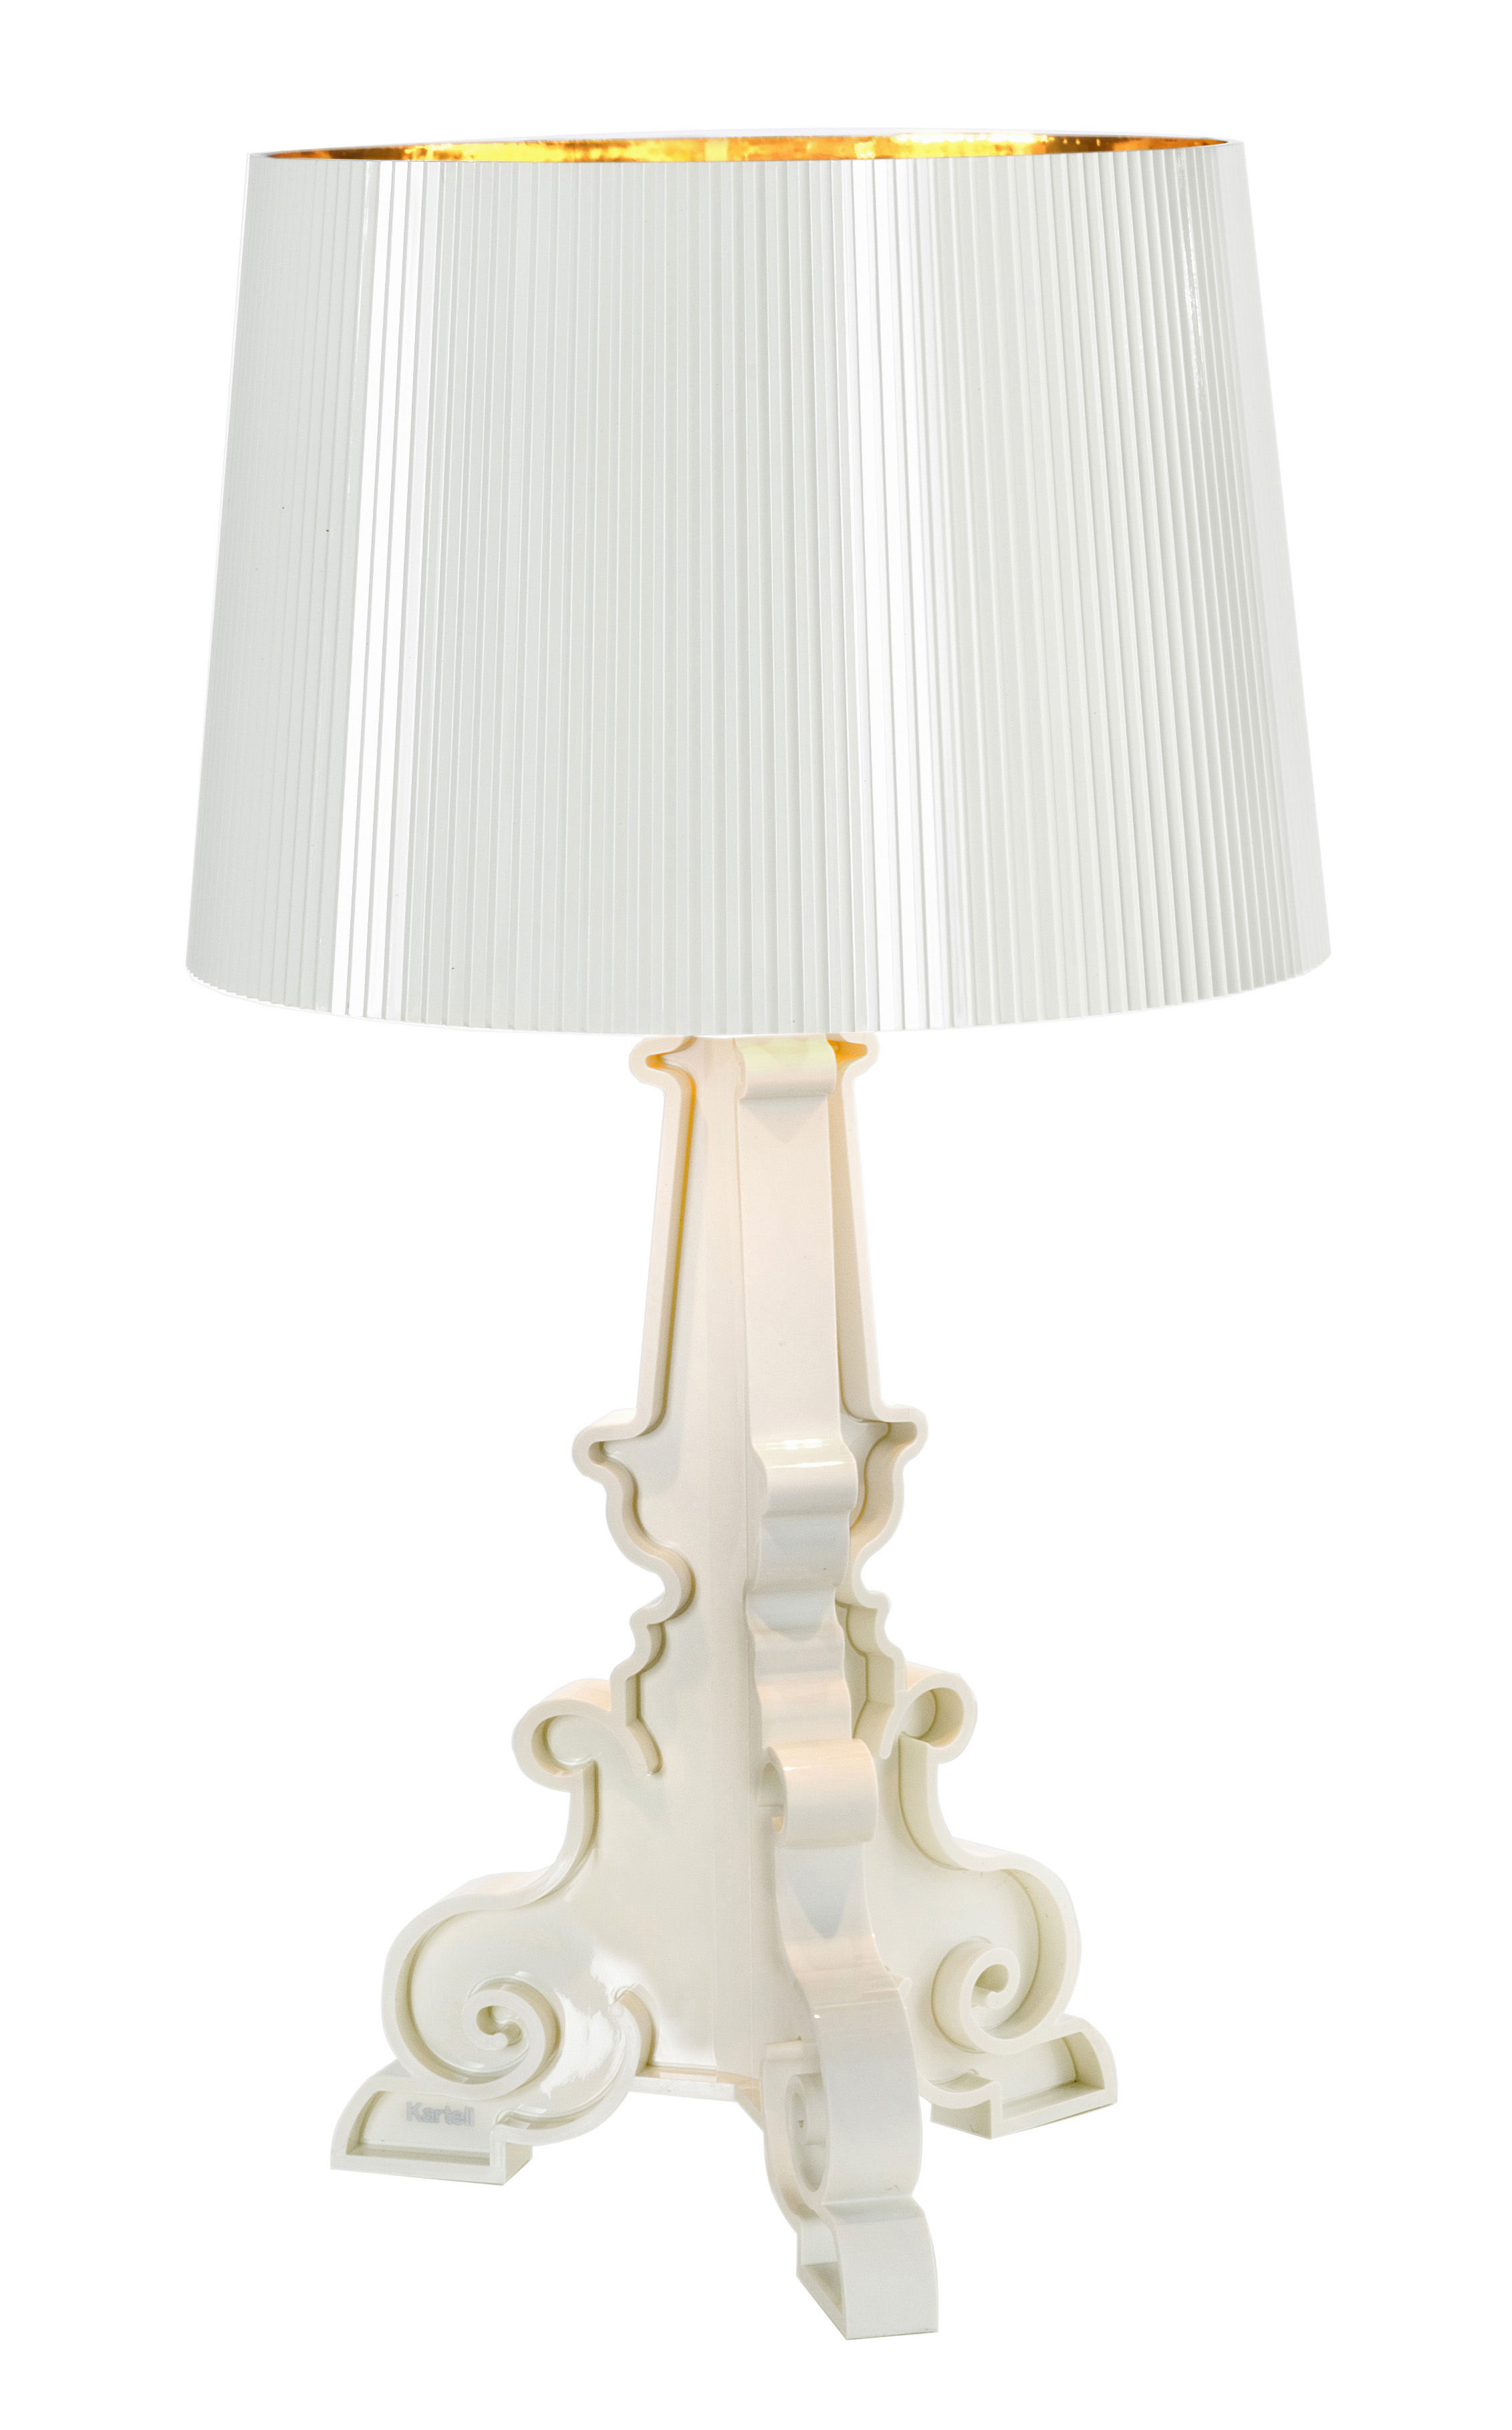 Bourgie Bianca Table Lamp White Gold Inside By Kartell